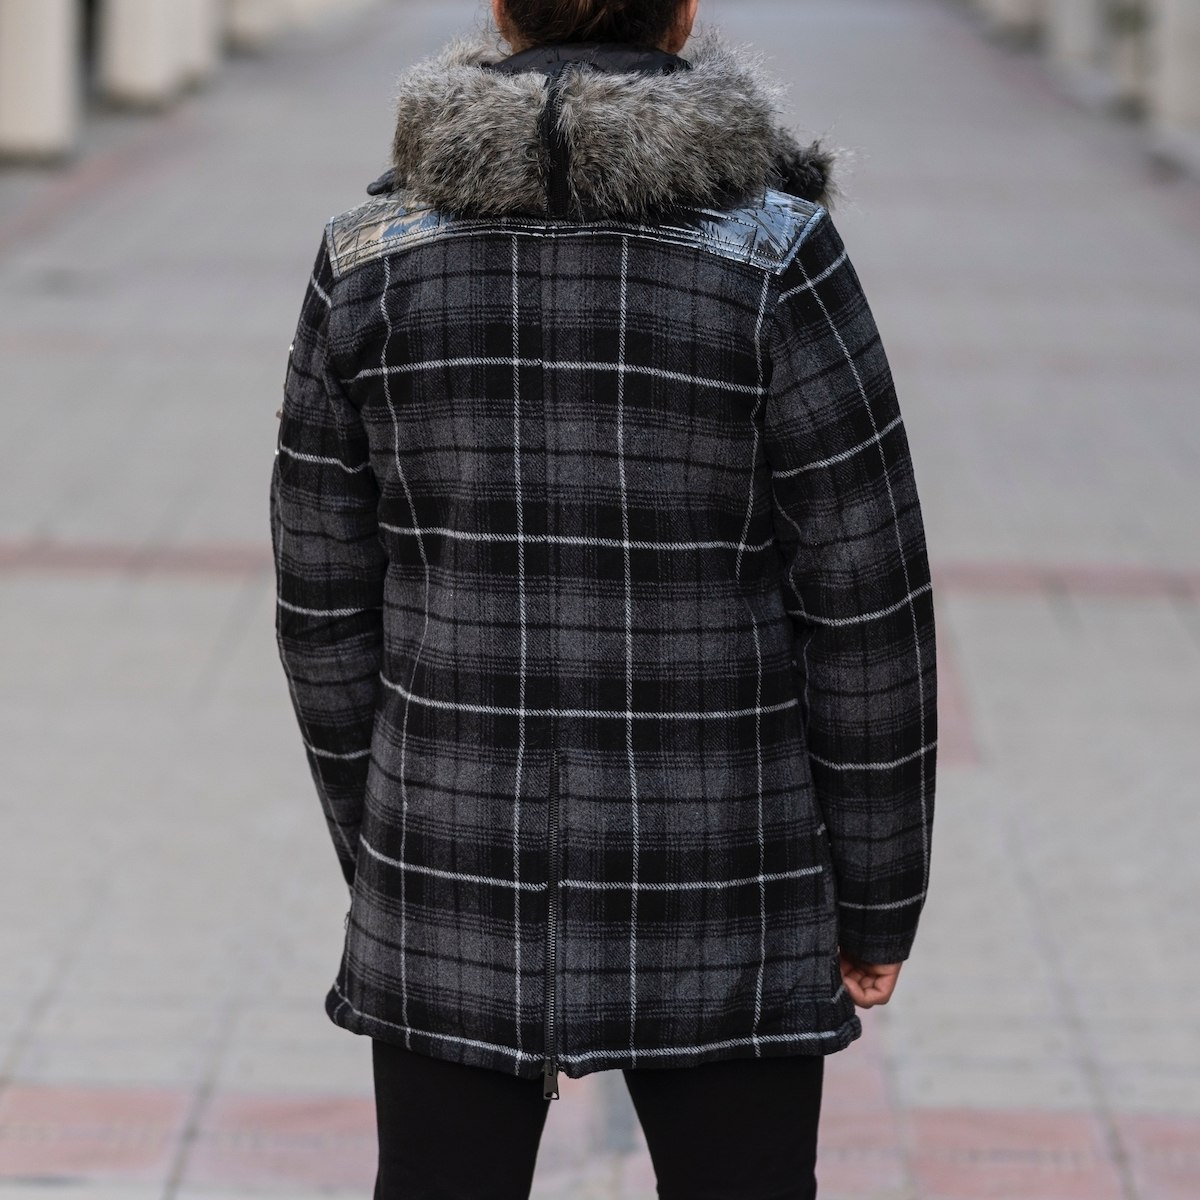 Furry Plaid Jacket With Hood MV Jacket Collection - 5